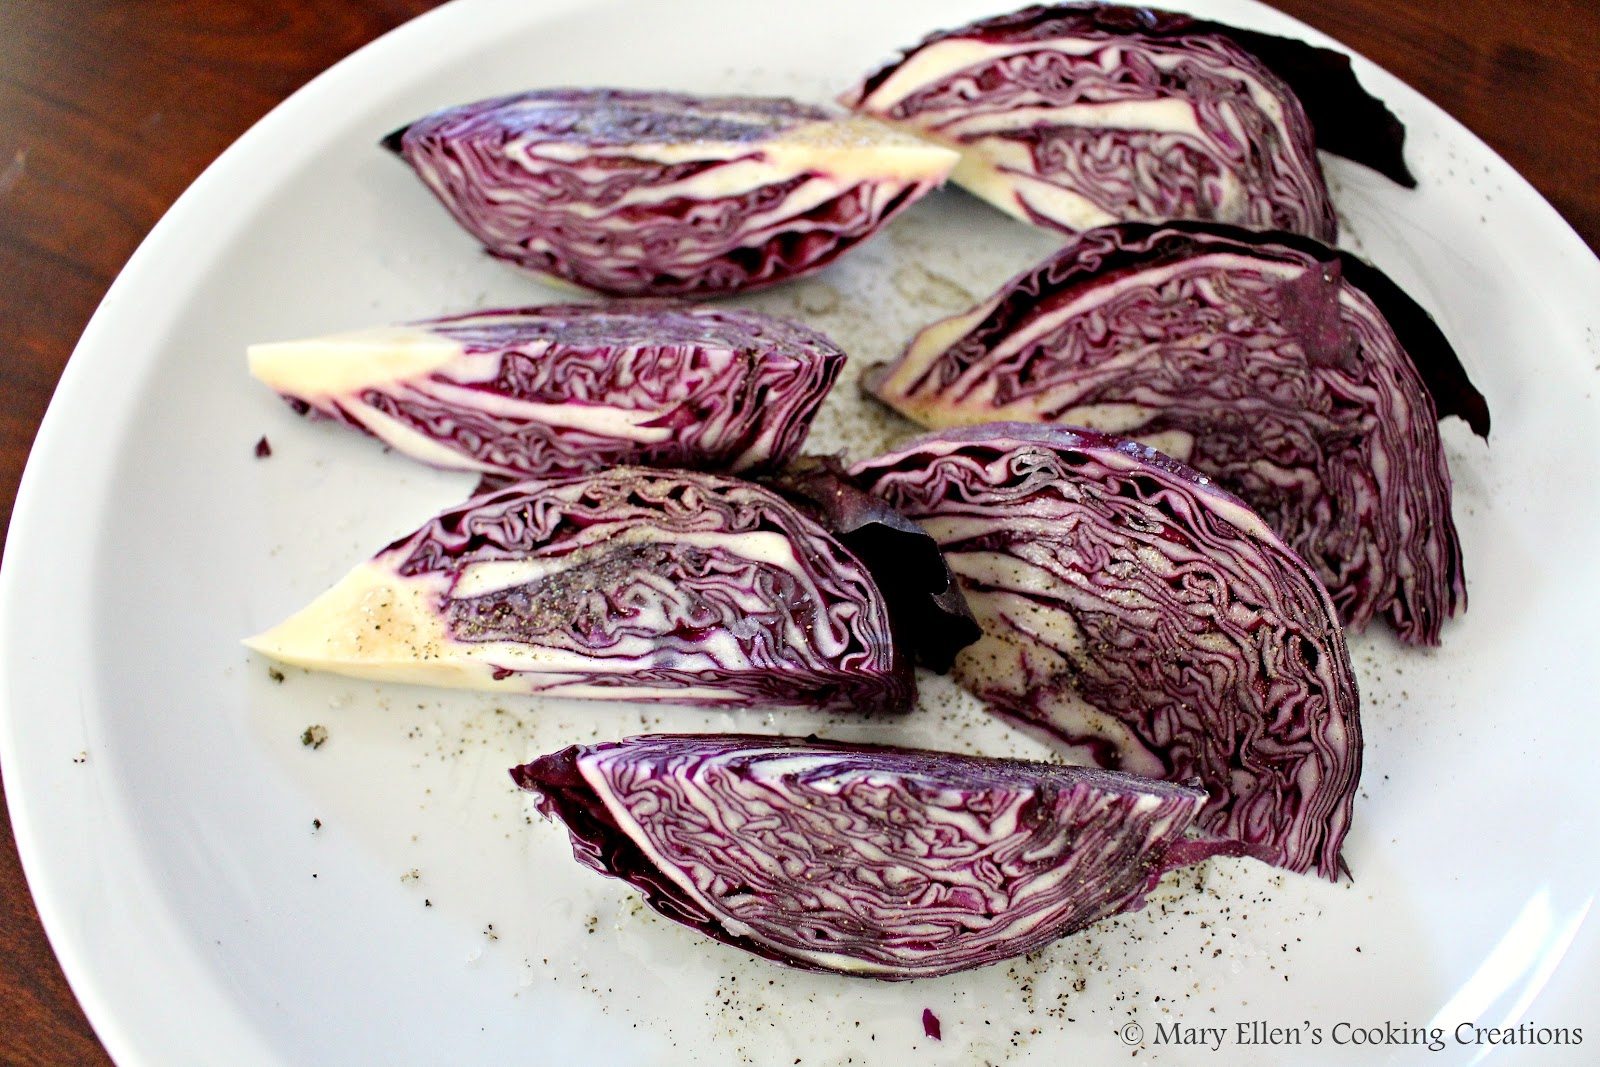 picked up a small head of red cabbage on a whim the other day. I ...